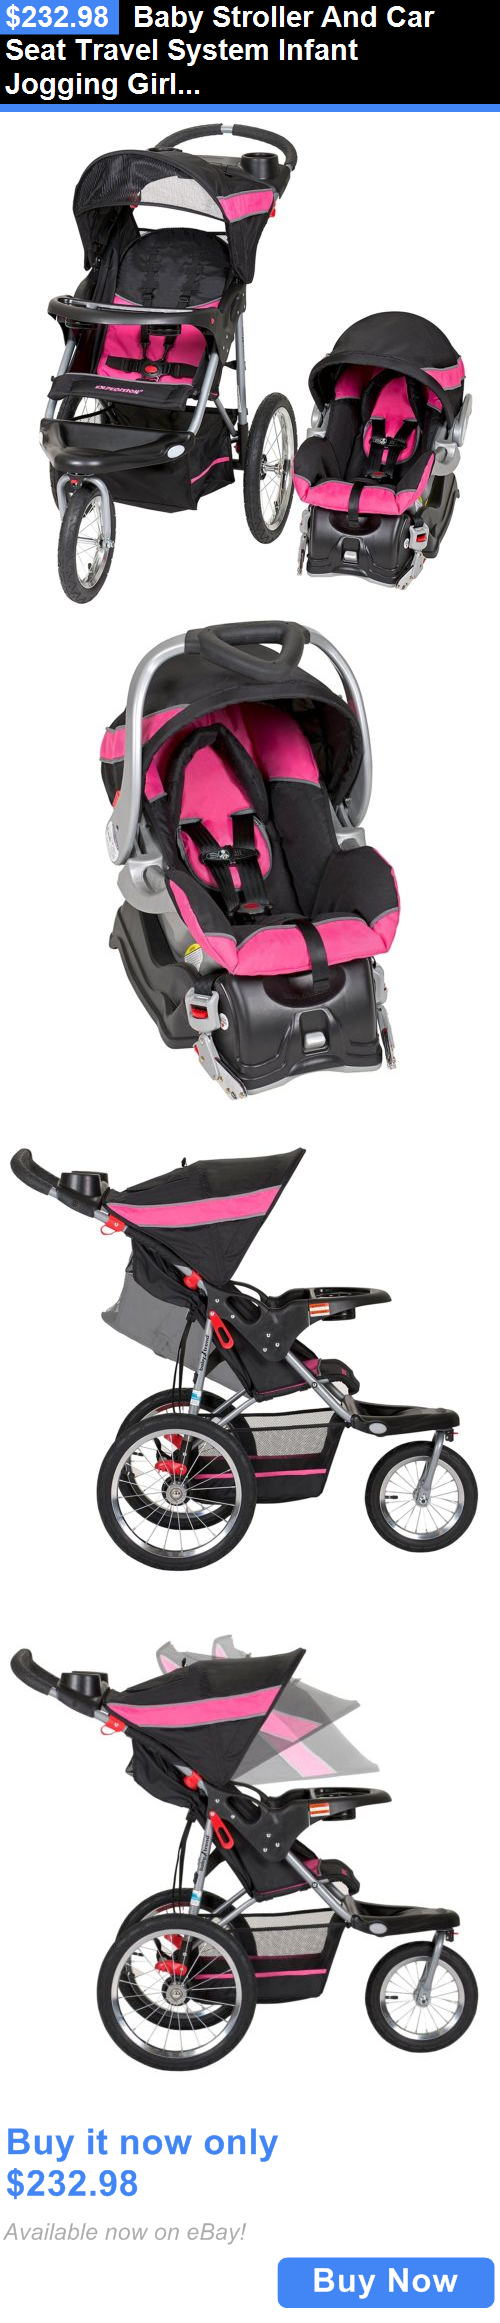 baby kid stuff Baby Stroller And Car Seat Travel System